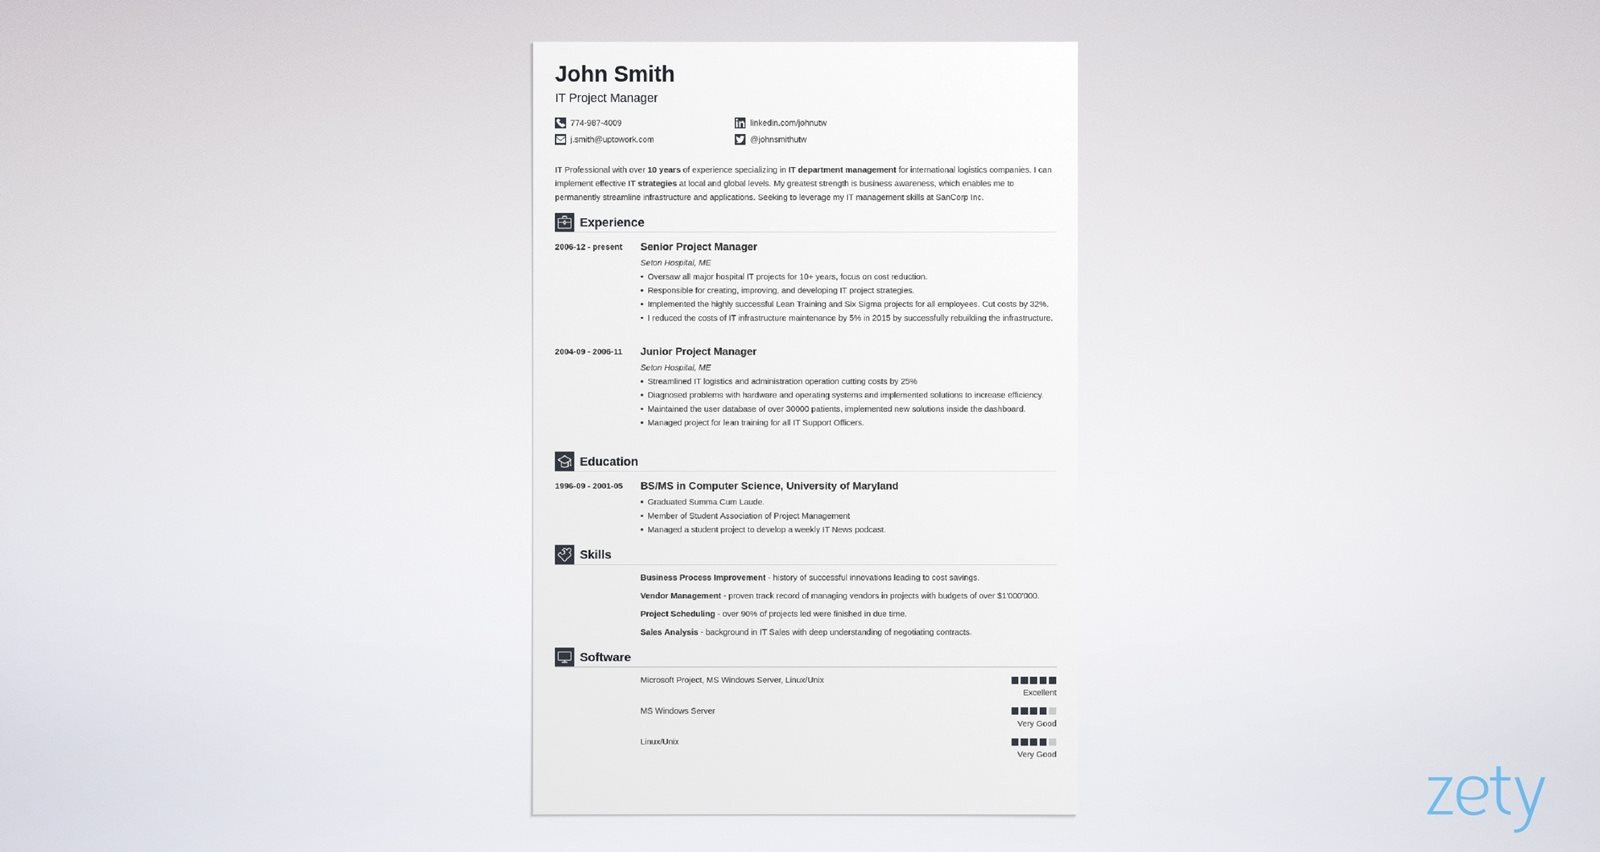 blank resume templates forms to fill in and finish your with short professional summary Resume Finish Your Resume With A Short Professional Summary